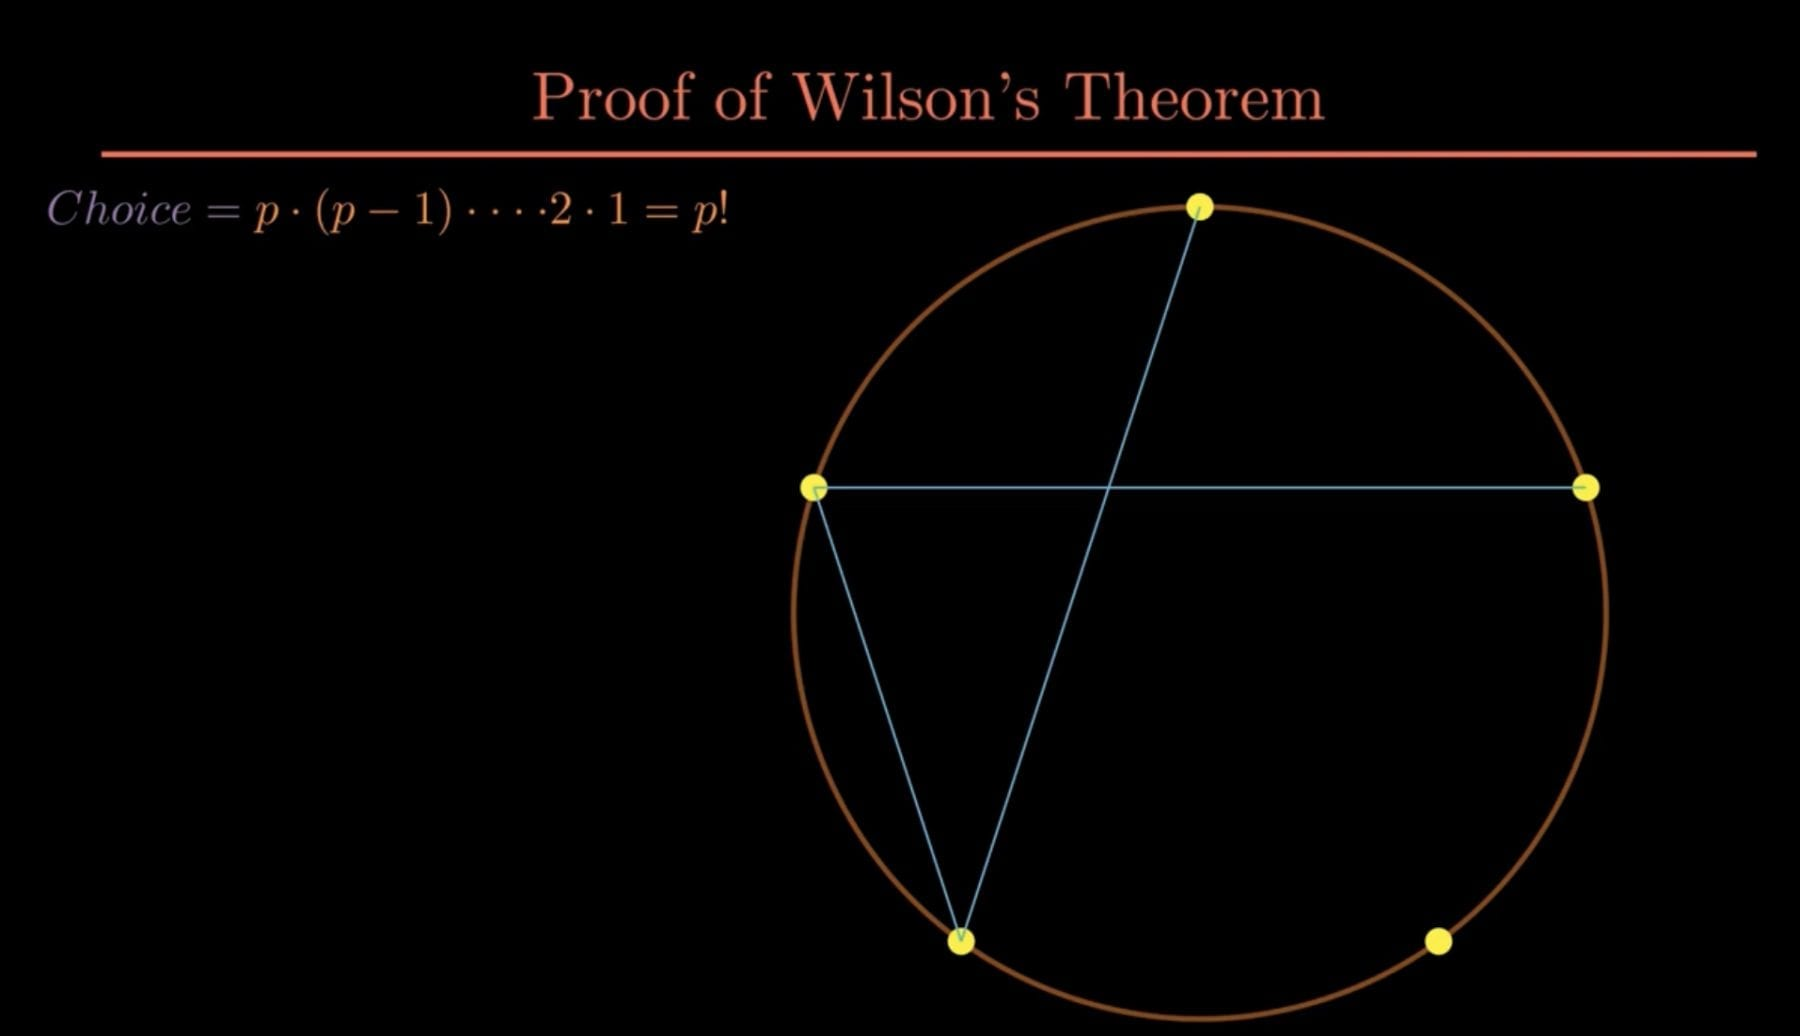 Wilson's Theorem Number Theory